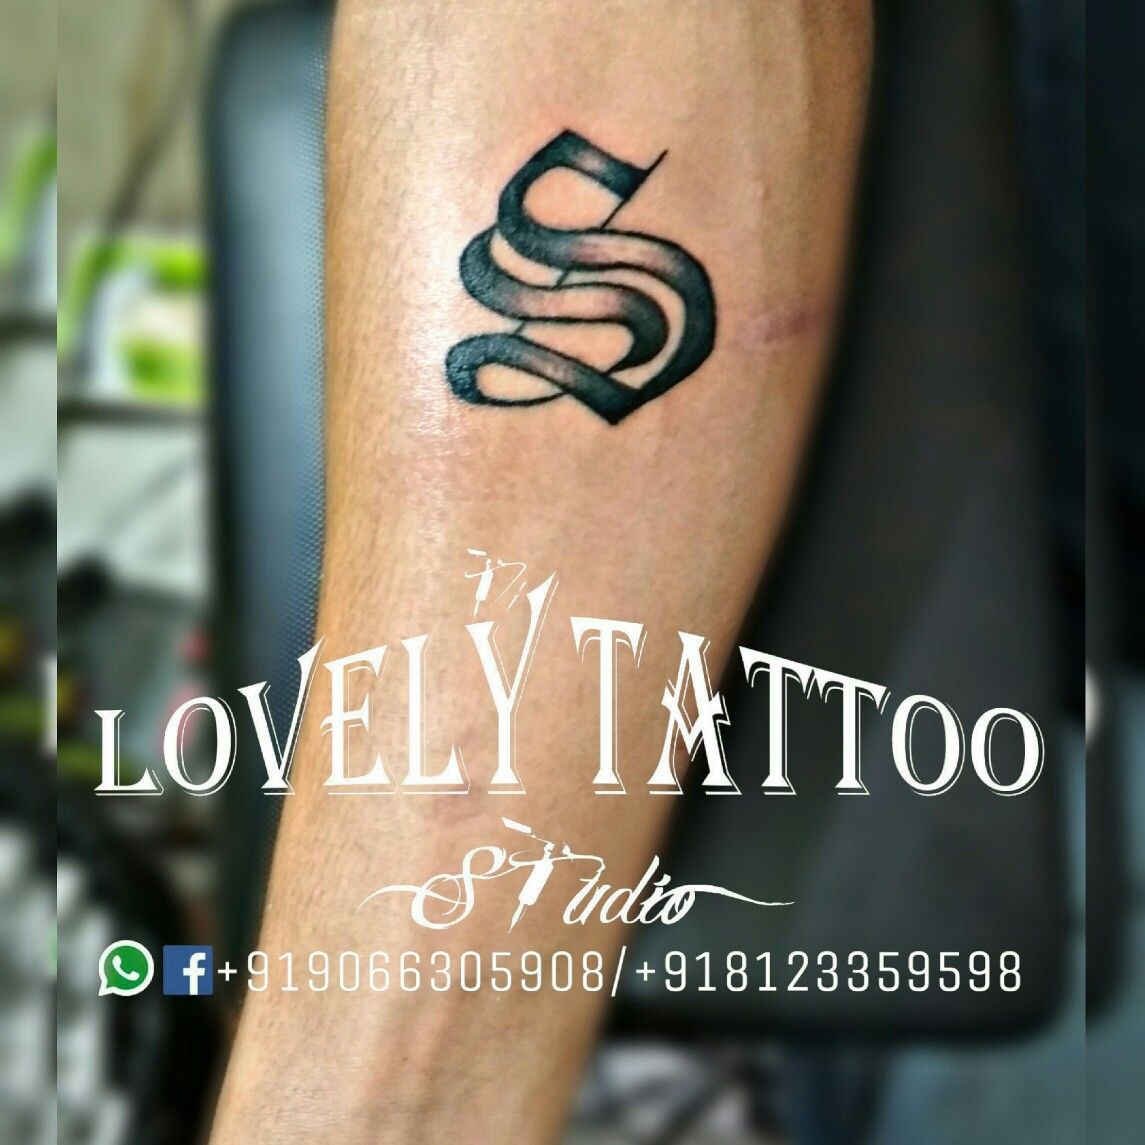 my small s tattoo design call for appointment 9066 305 908 lovely tattoo pinterest. Black Bedroom Furniture Sets. Home Design Ideas